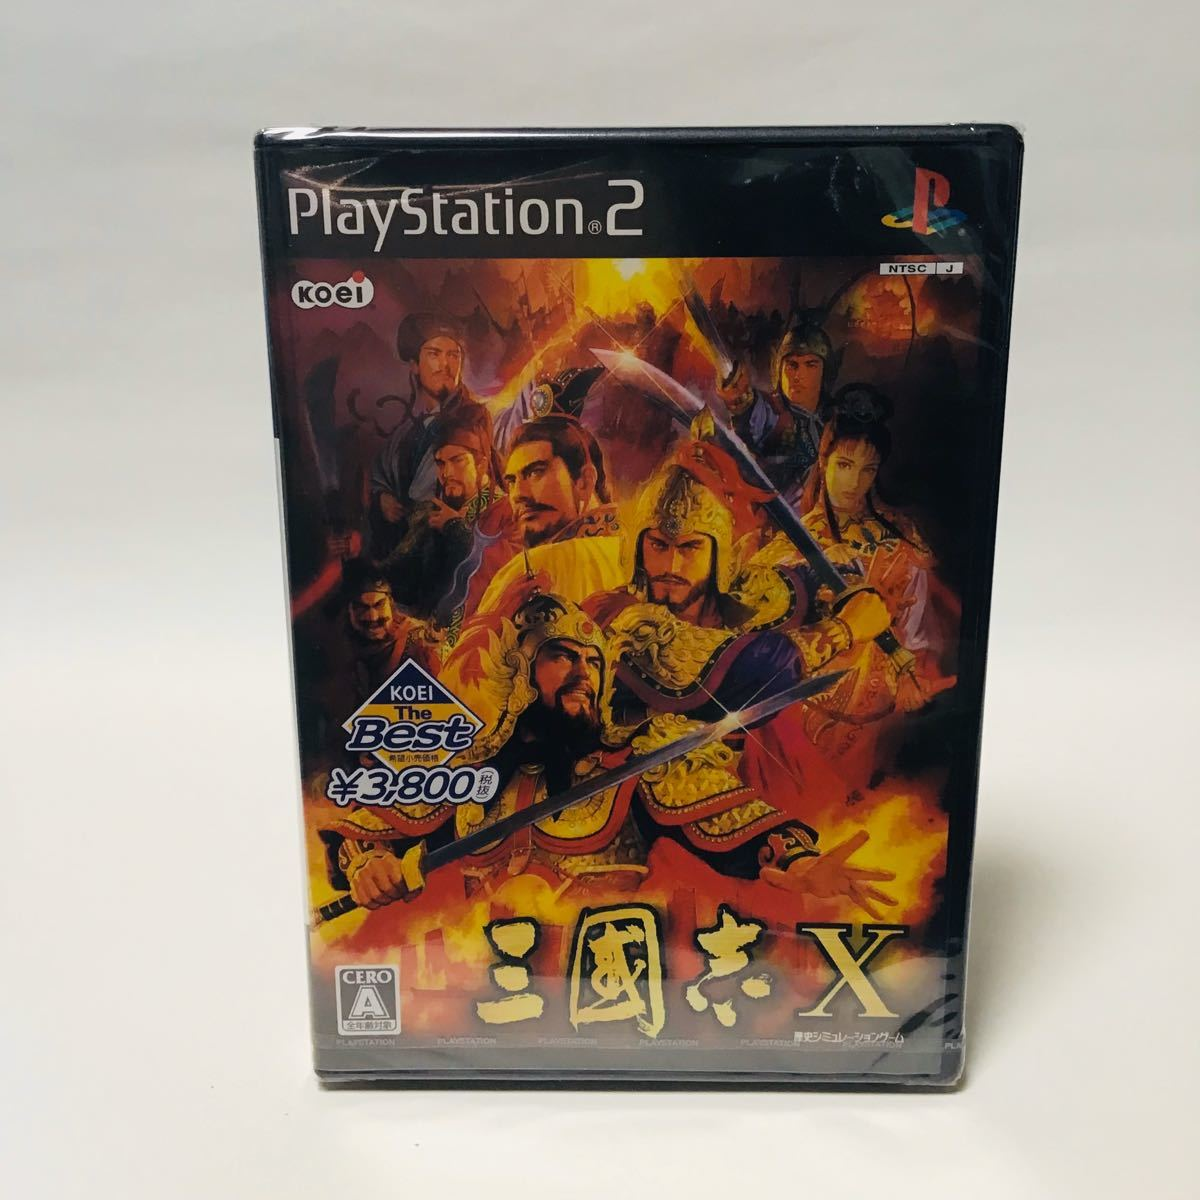 KOEI The Best 三國志X - PS2